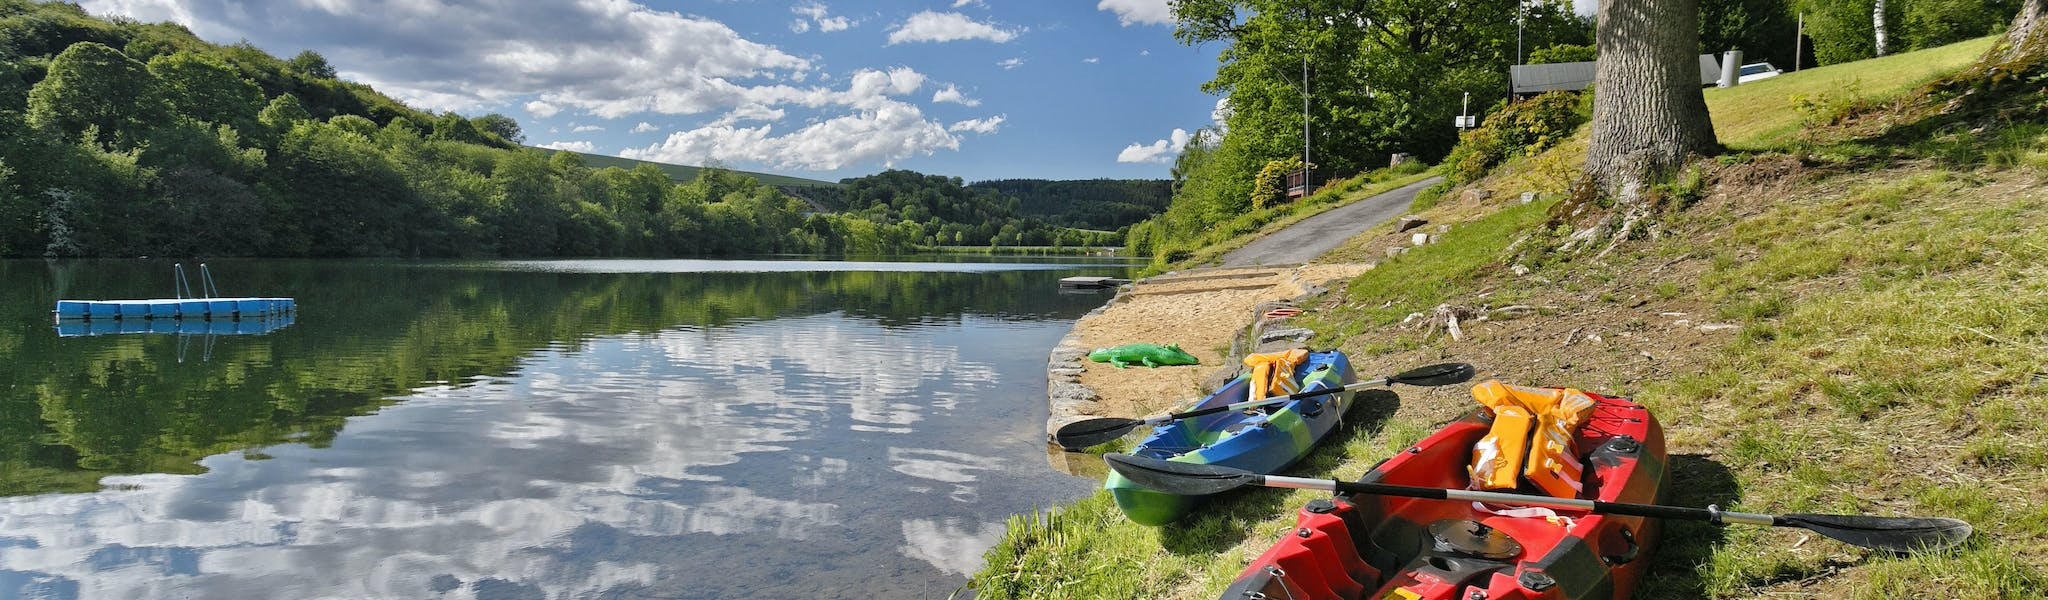 Camping Hennesee